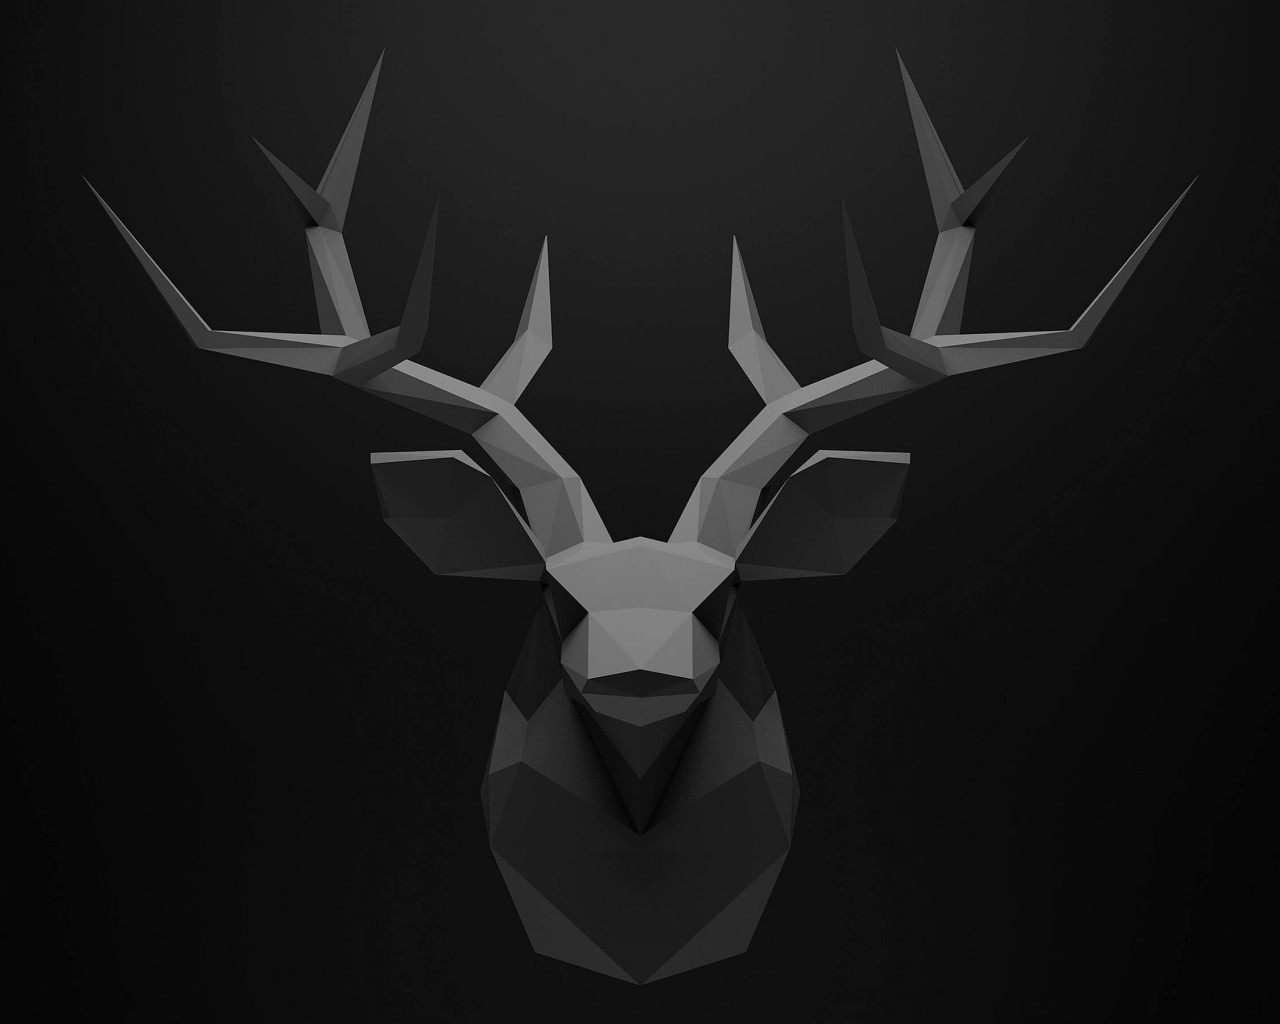 Low Poly Deer Head Wallpaper for Desktop 1280x1024